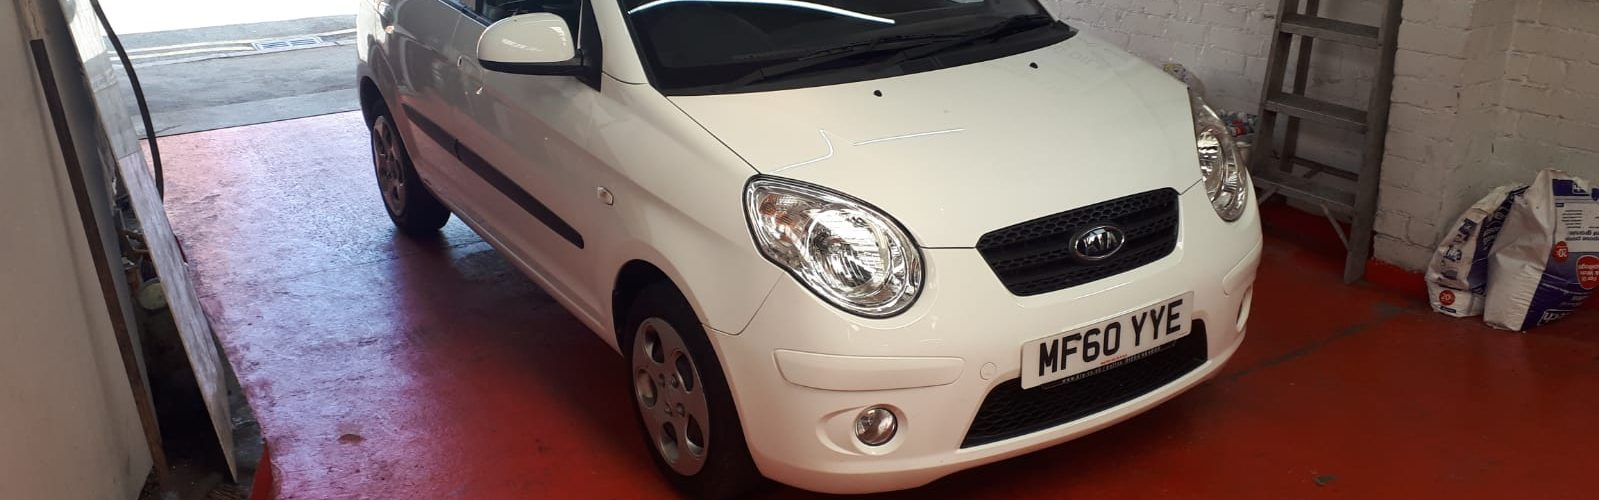 For Sale: White 2010 Kia Picanto